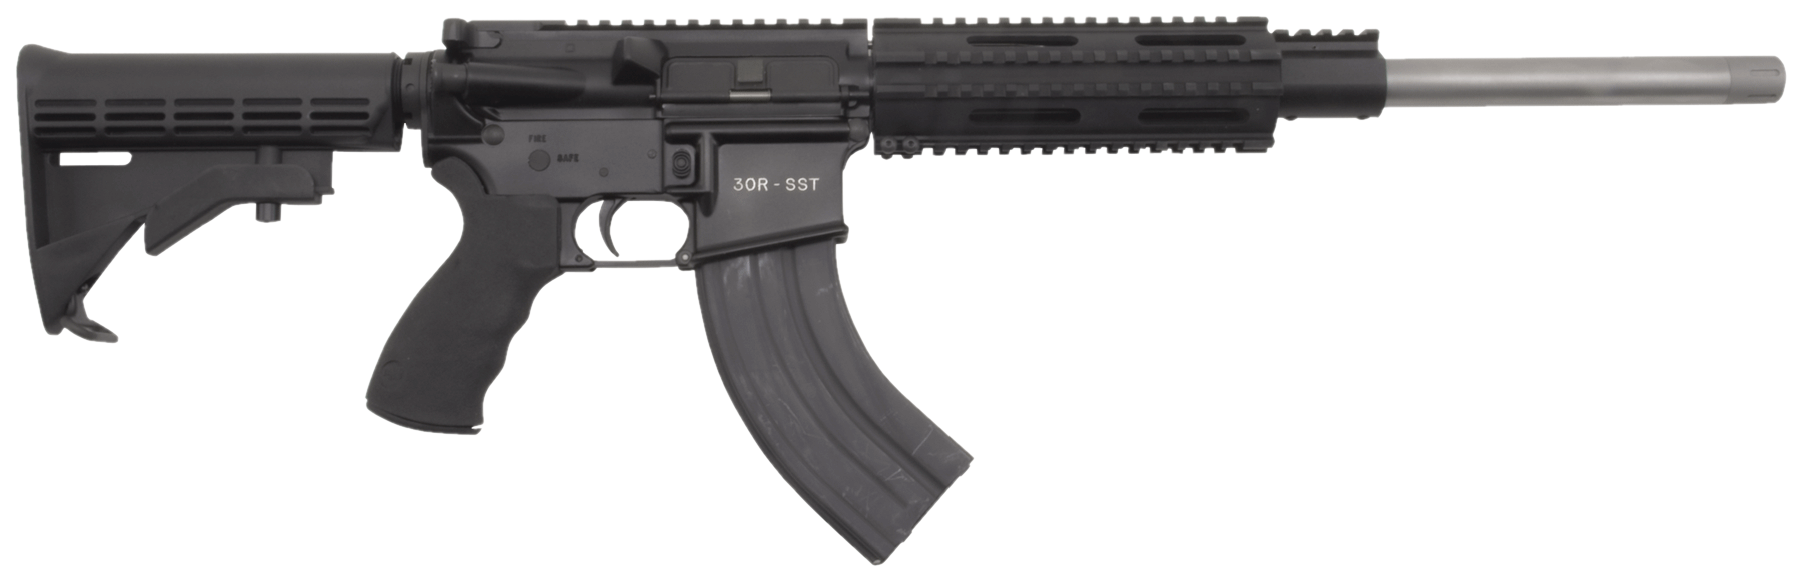 Olympic Arms K16SST300BO K16SST Carbine Semi-Automatic 300 AAC Blackout/Whisper (7.62x35mm) 16